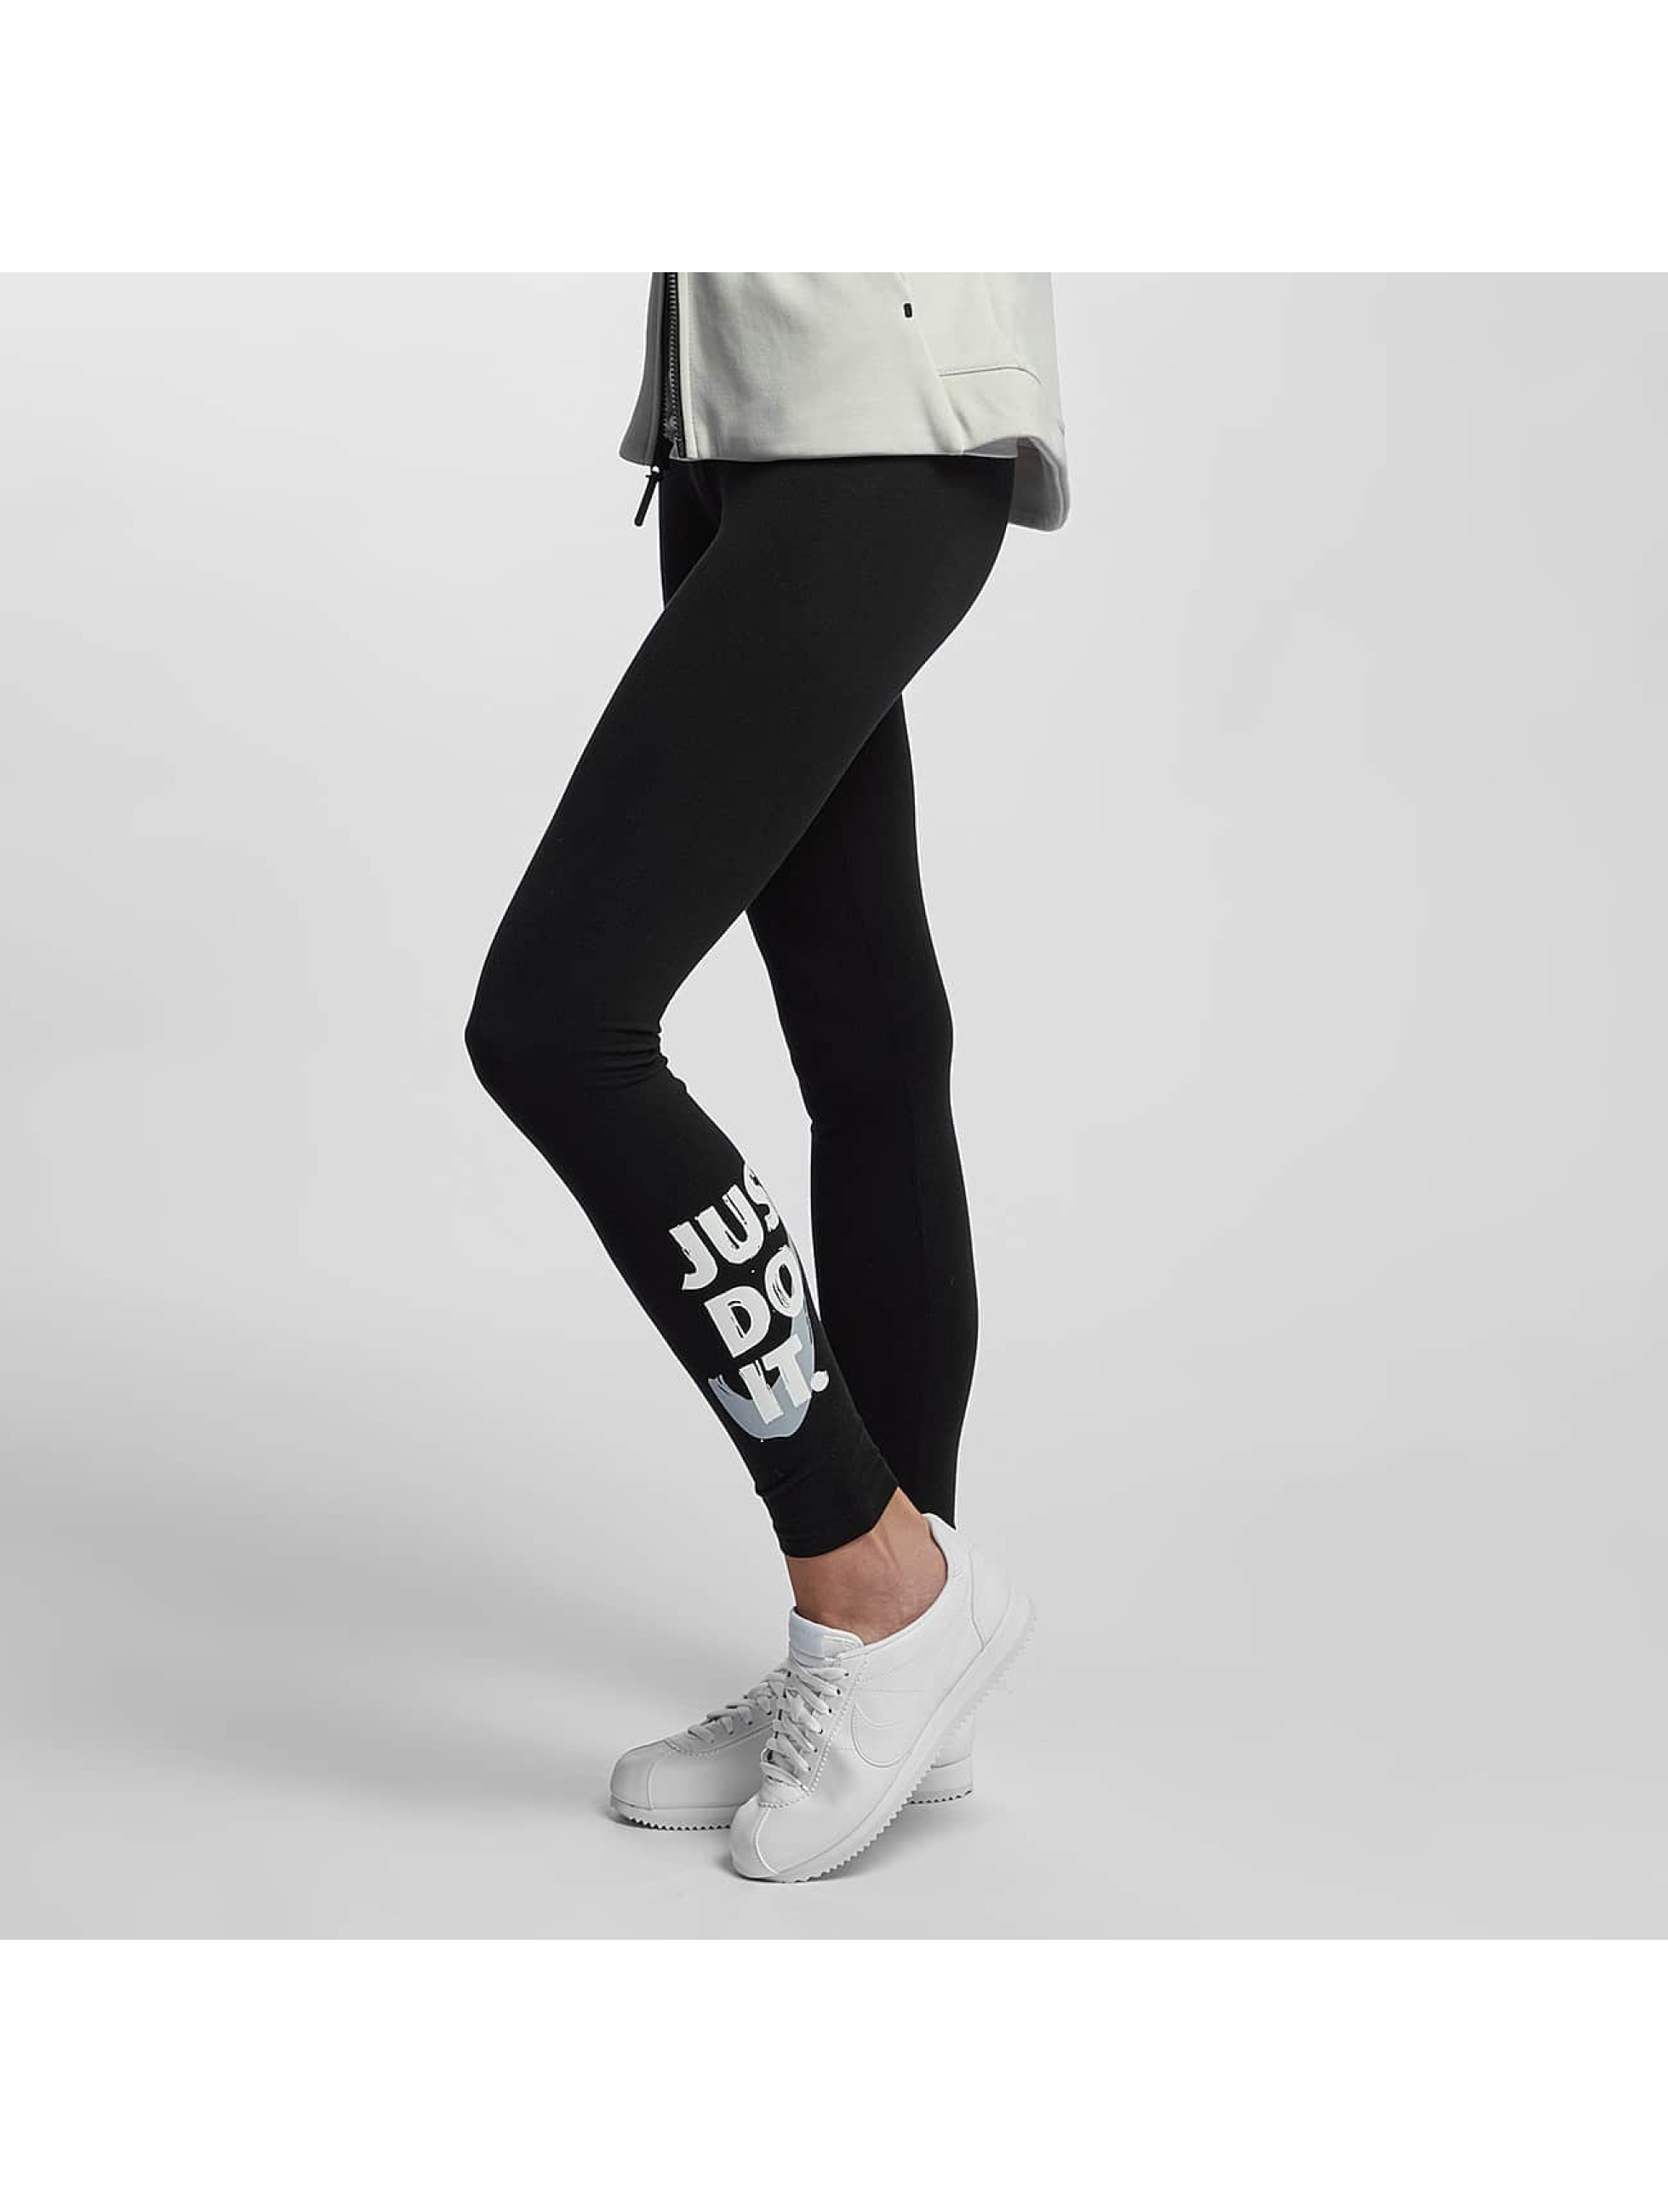 Nike Frauen Legging Club JDI in schwarz